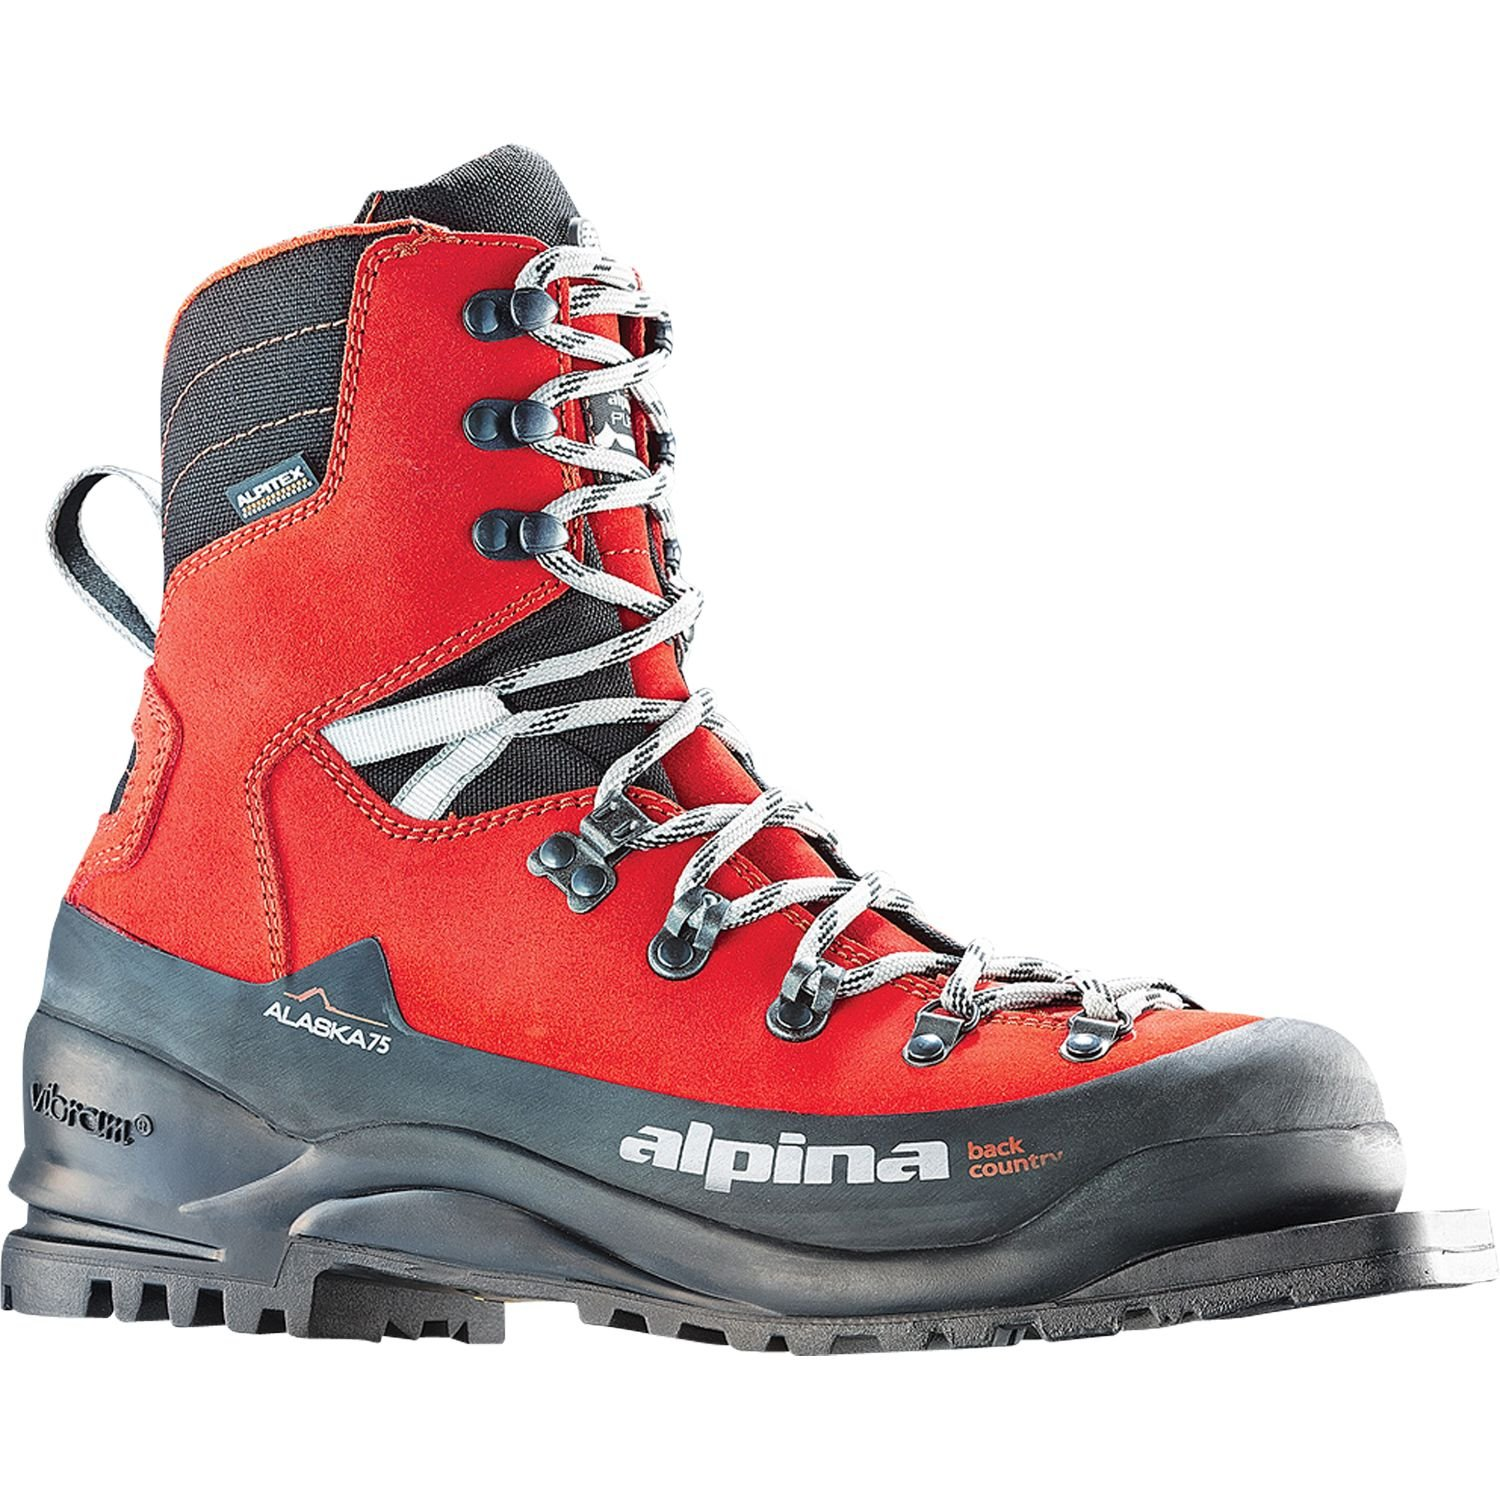 Alpina Sports Alaska 75 Leather 3 Pin 75 mm Backcountry Cross Country Nordic Ski Boots, Euro 38, Red/Black by Alpina